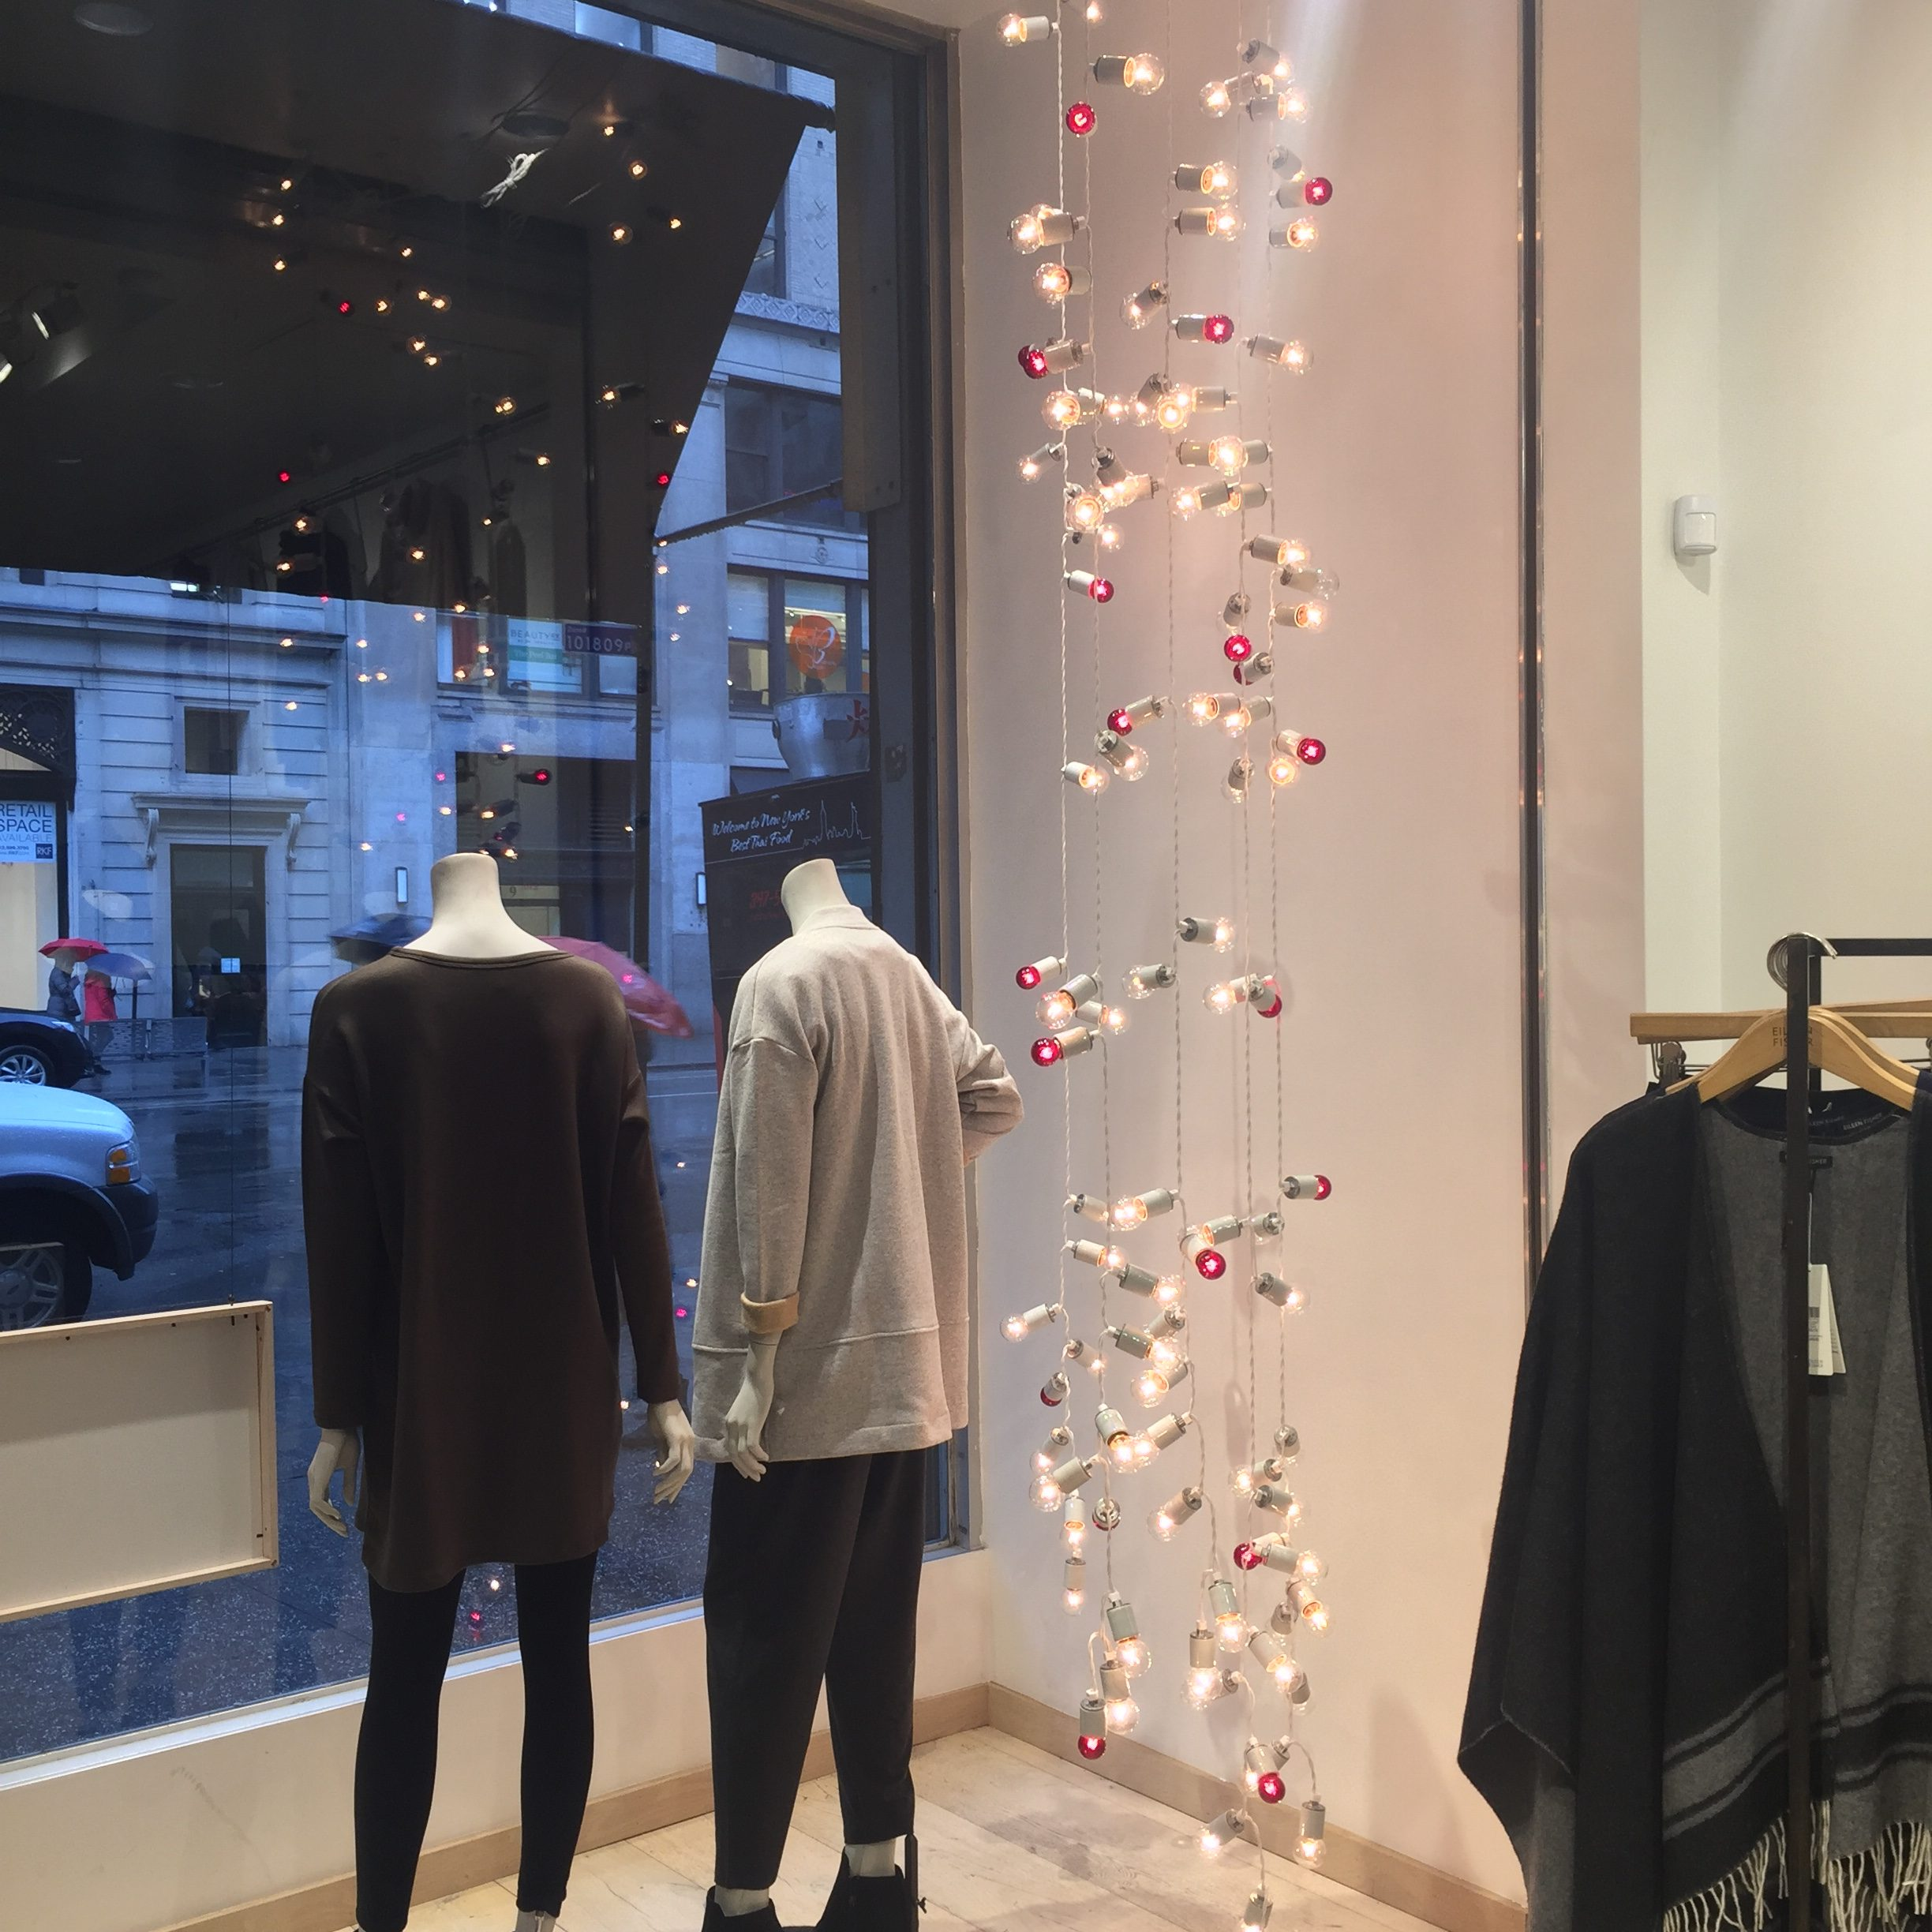 Custom fabricated and manufactured string lights for Eileen Fisher holiday window displays.